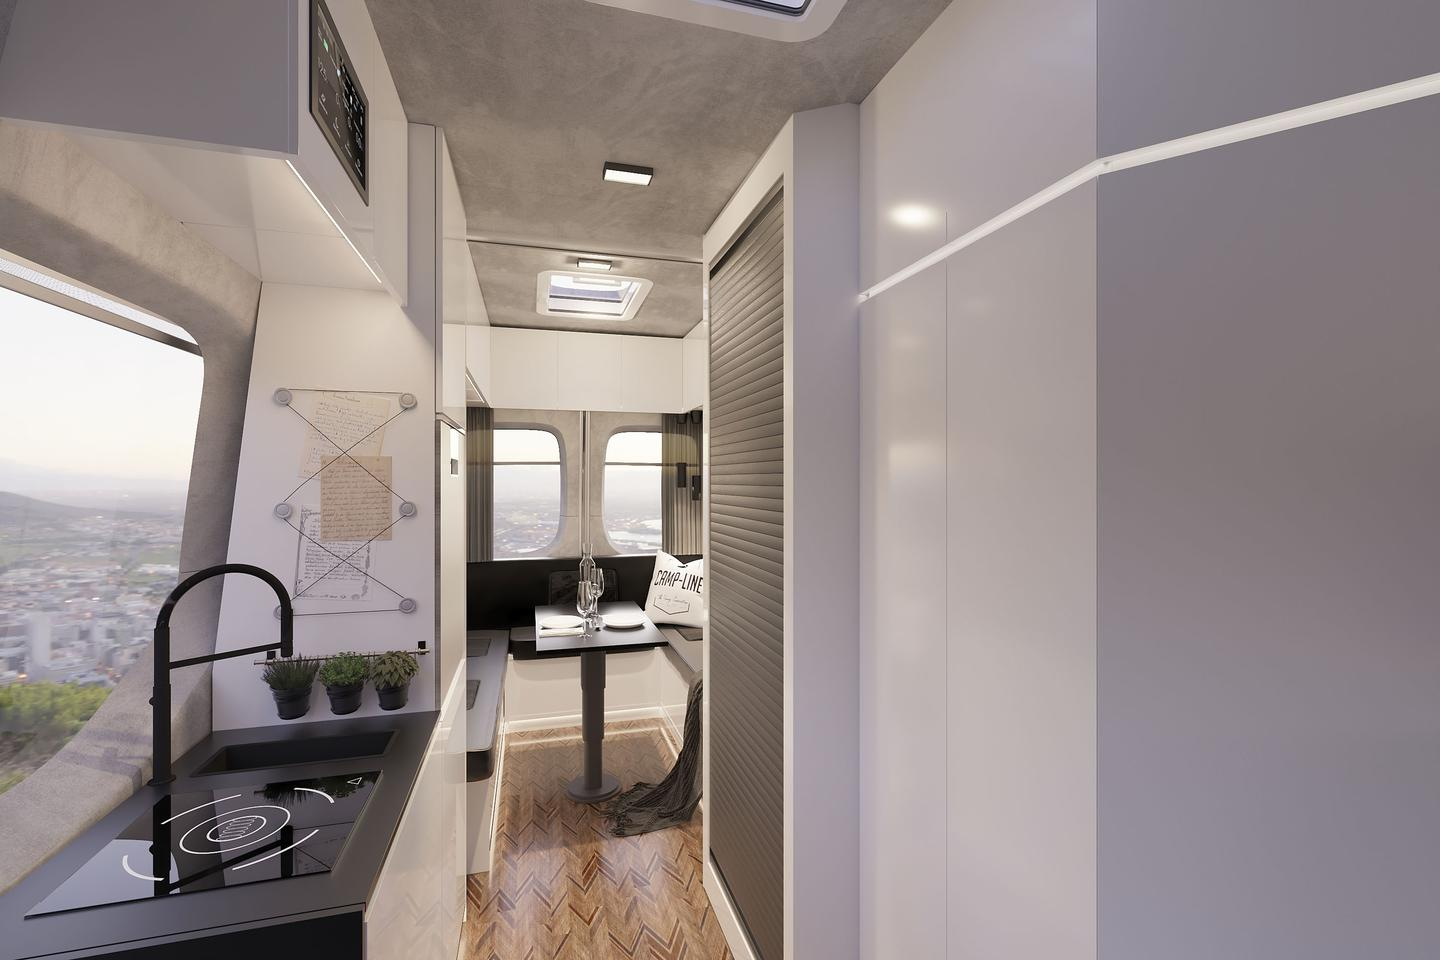 The Sprinter-based Lounge shown in Camp-Line's official photos show a slightly different look and layout